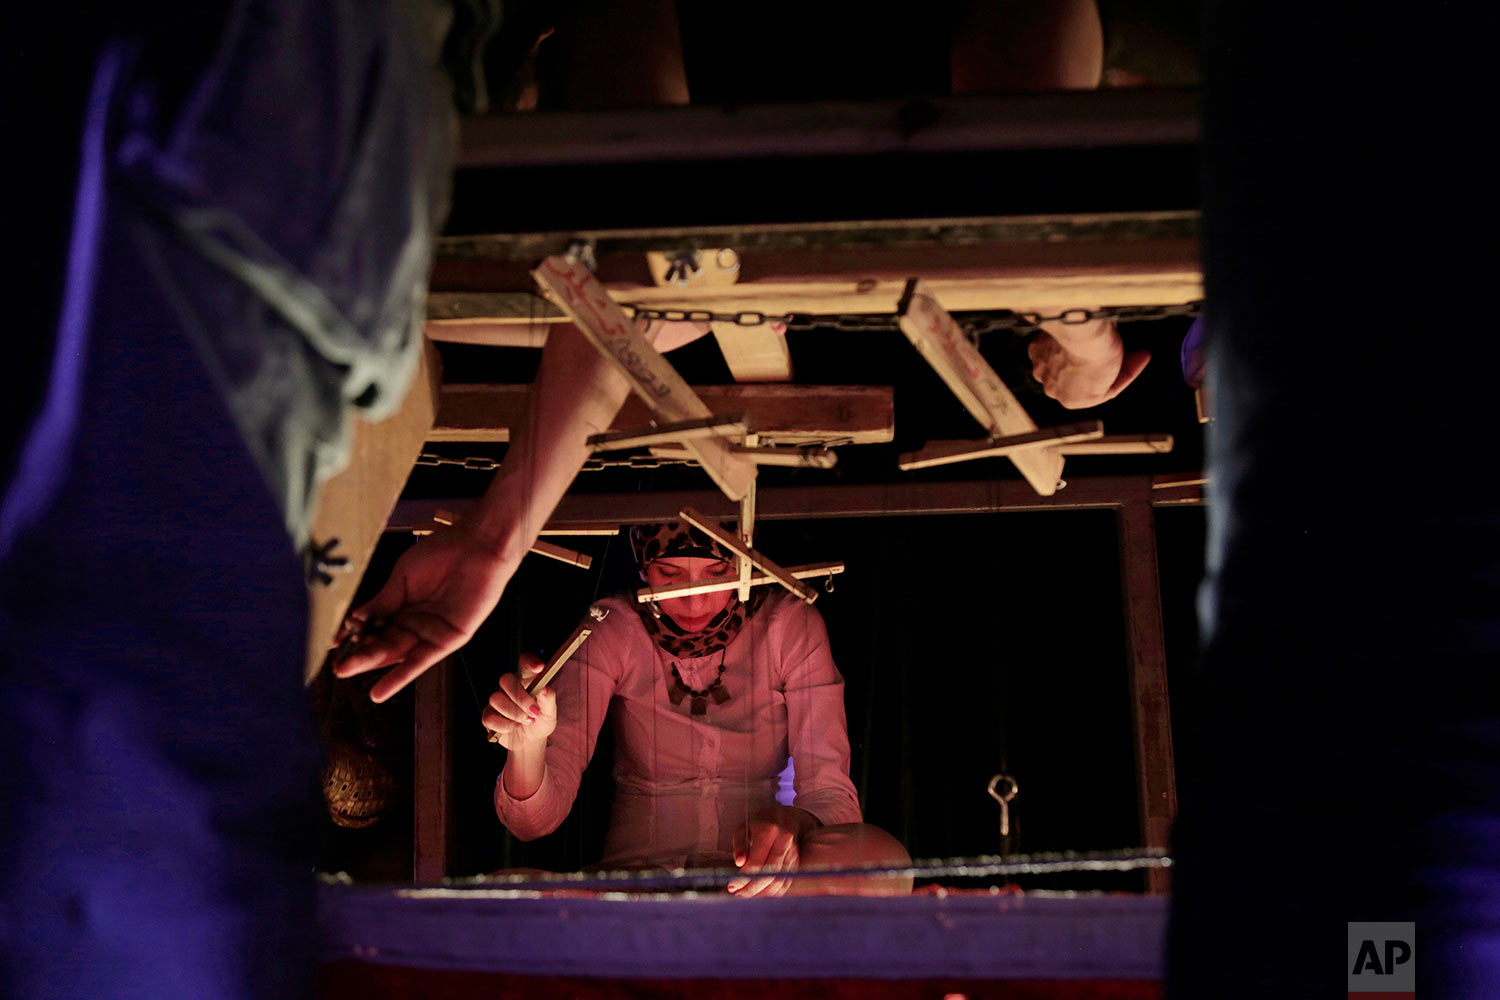 Puppeteer artist part Egyptian artist Mohamed Fawzi Bakkar's team moves a puppet and preforms with Umm Kalthoum, the most famed singer of classical Arabic music, marionettes during a performance at the El Sawy Cultural Center, in Cairo, Egypt, May 3, 2018. (AP Photo/Nariman El-Mofty)